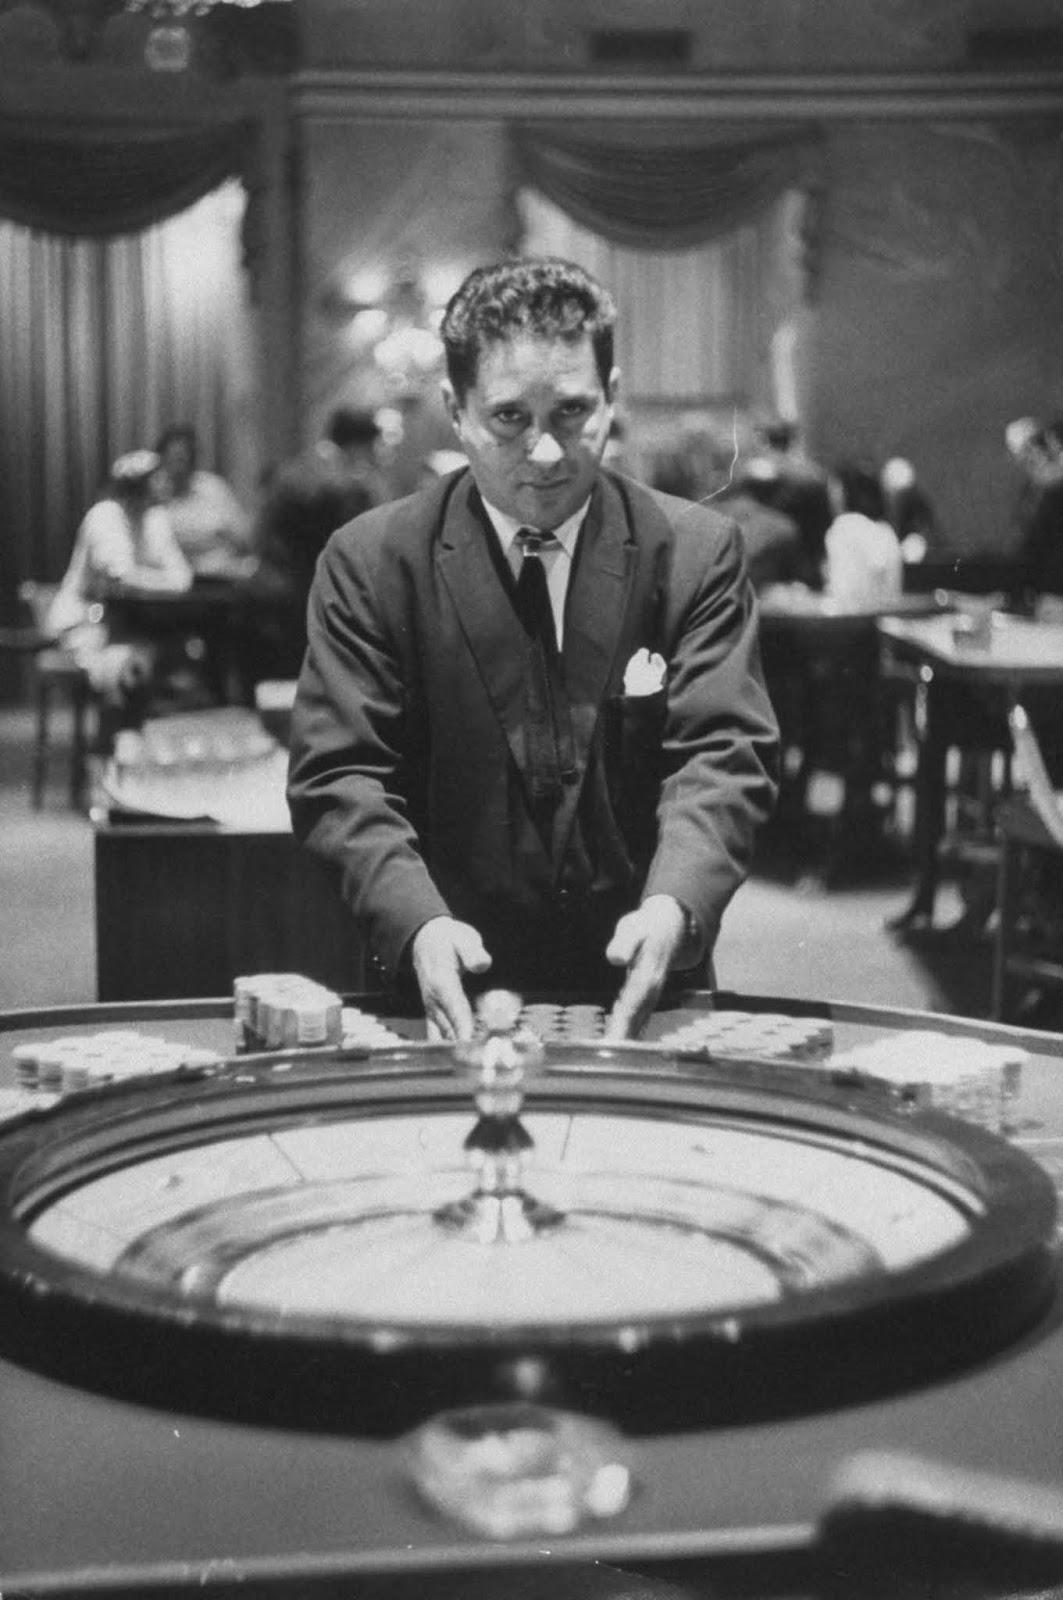 Roulette dealer at the National Casino. 1958.